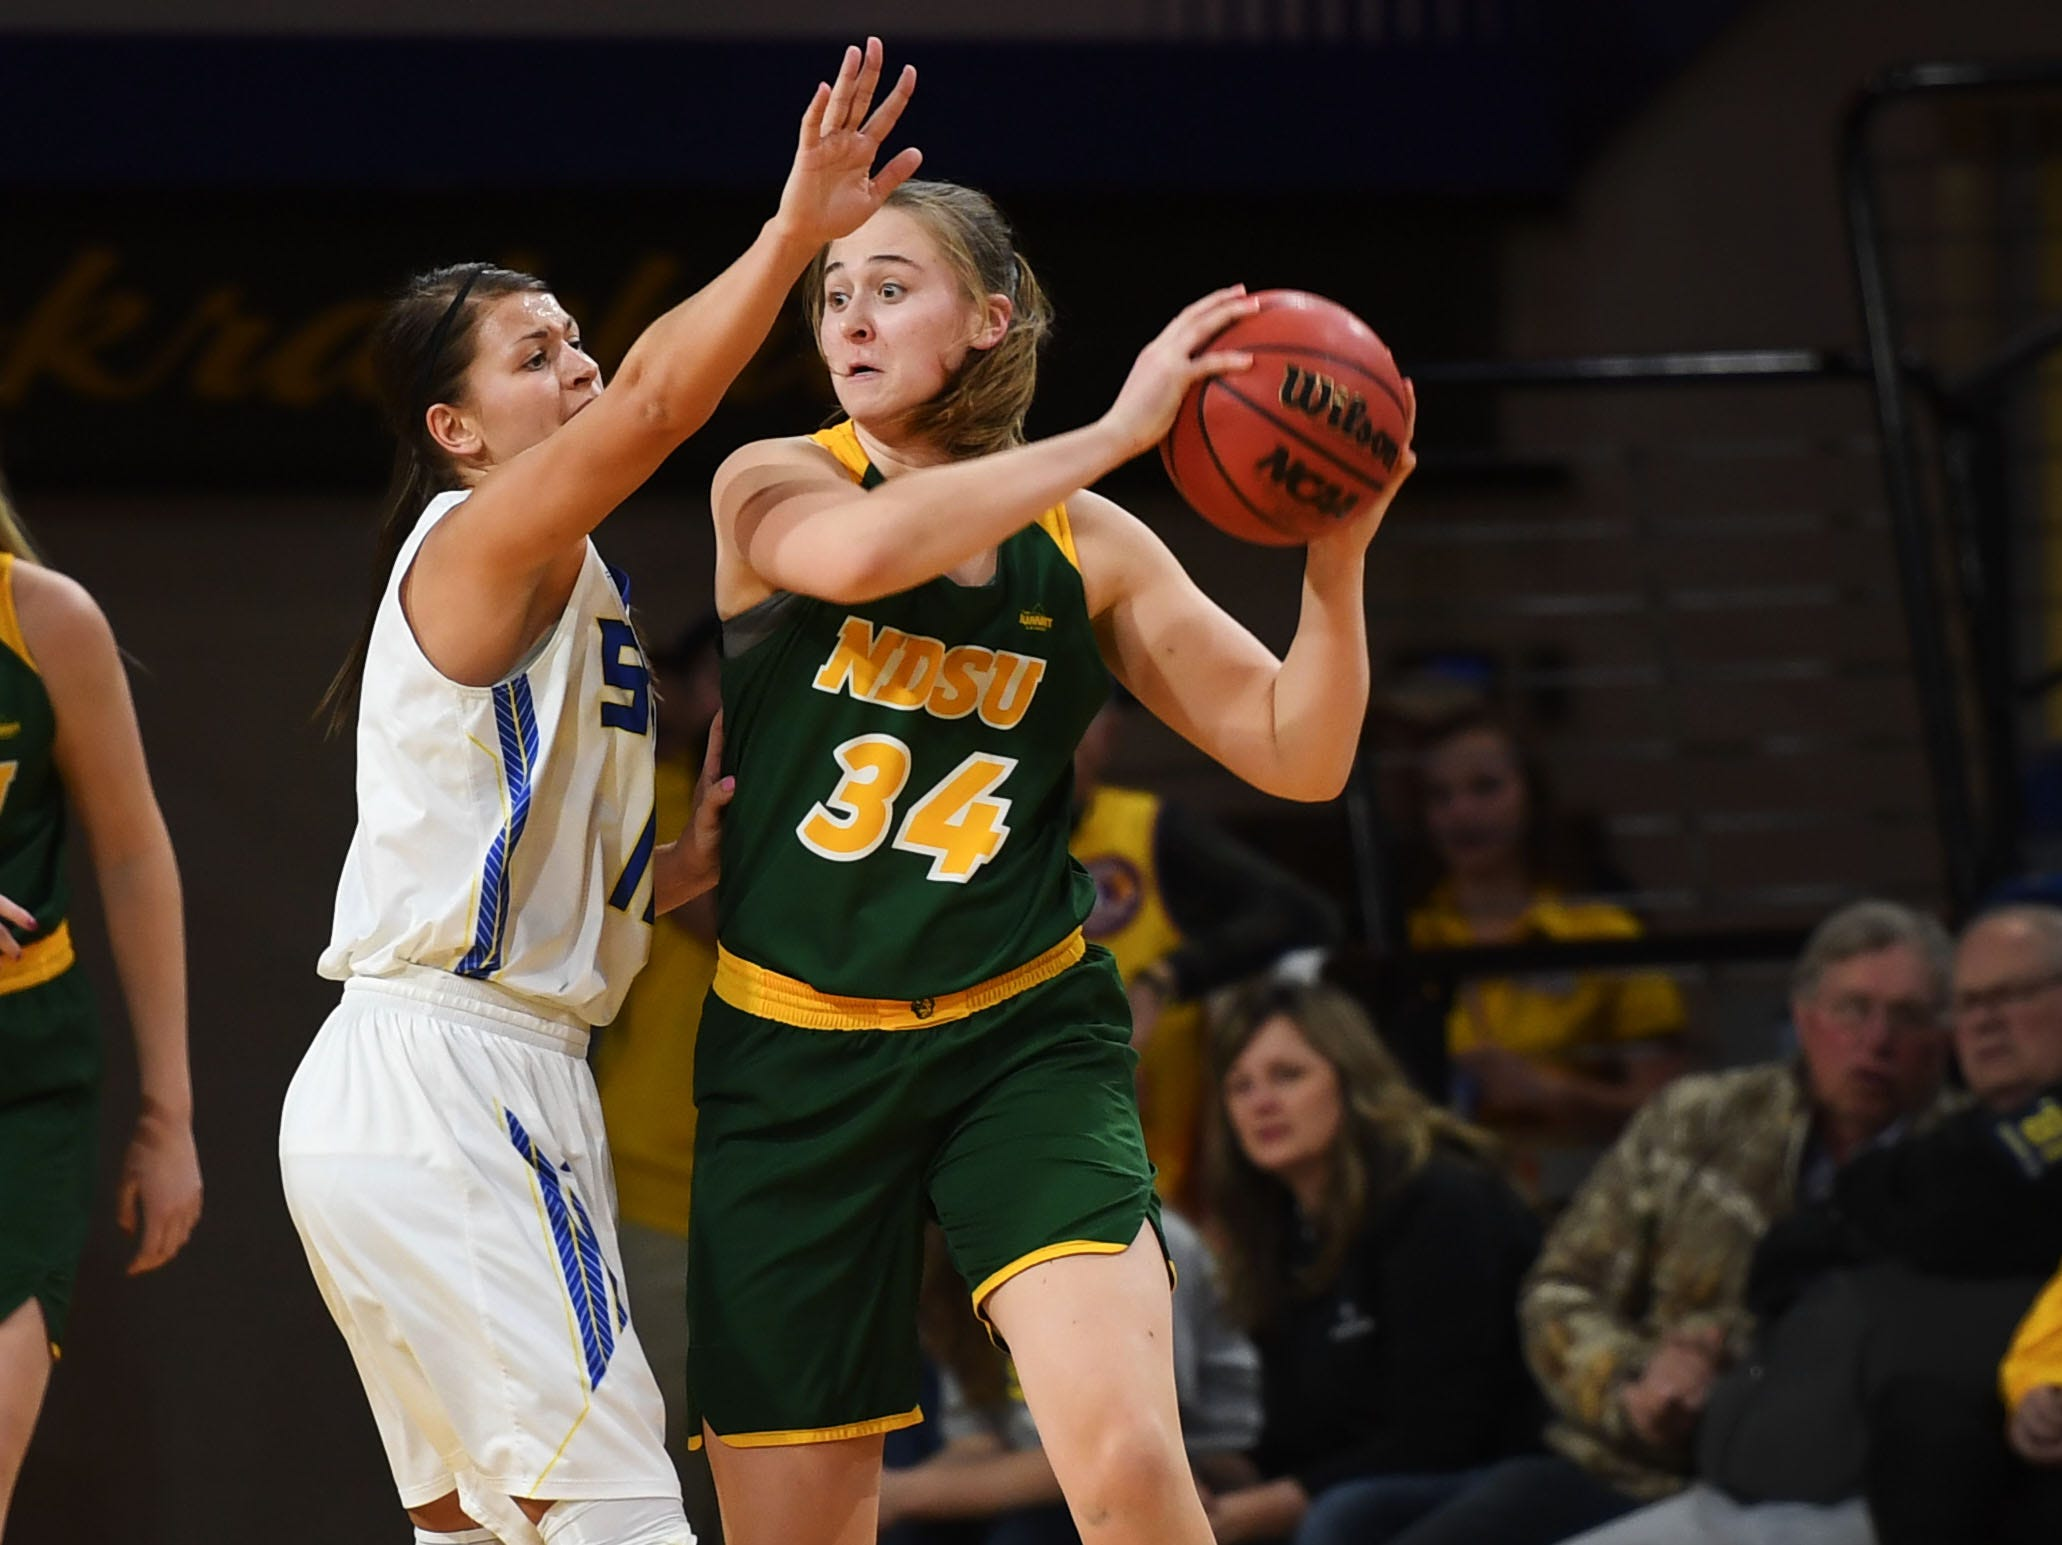 NDSU's Emily Dietz goes against SDSU defense during the game Wednesday, Jan. 23, at Frost Arena in Brookings.